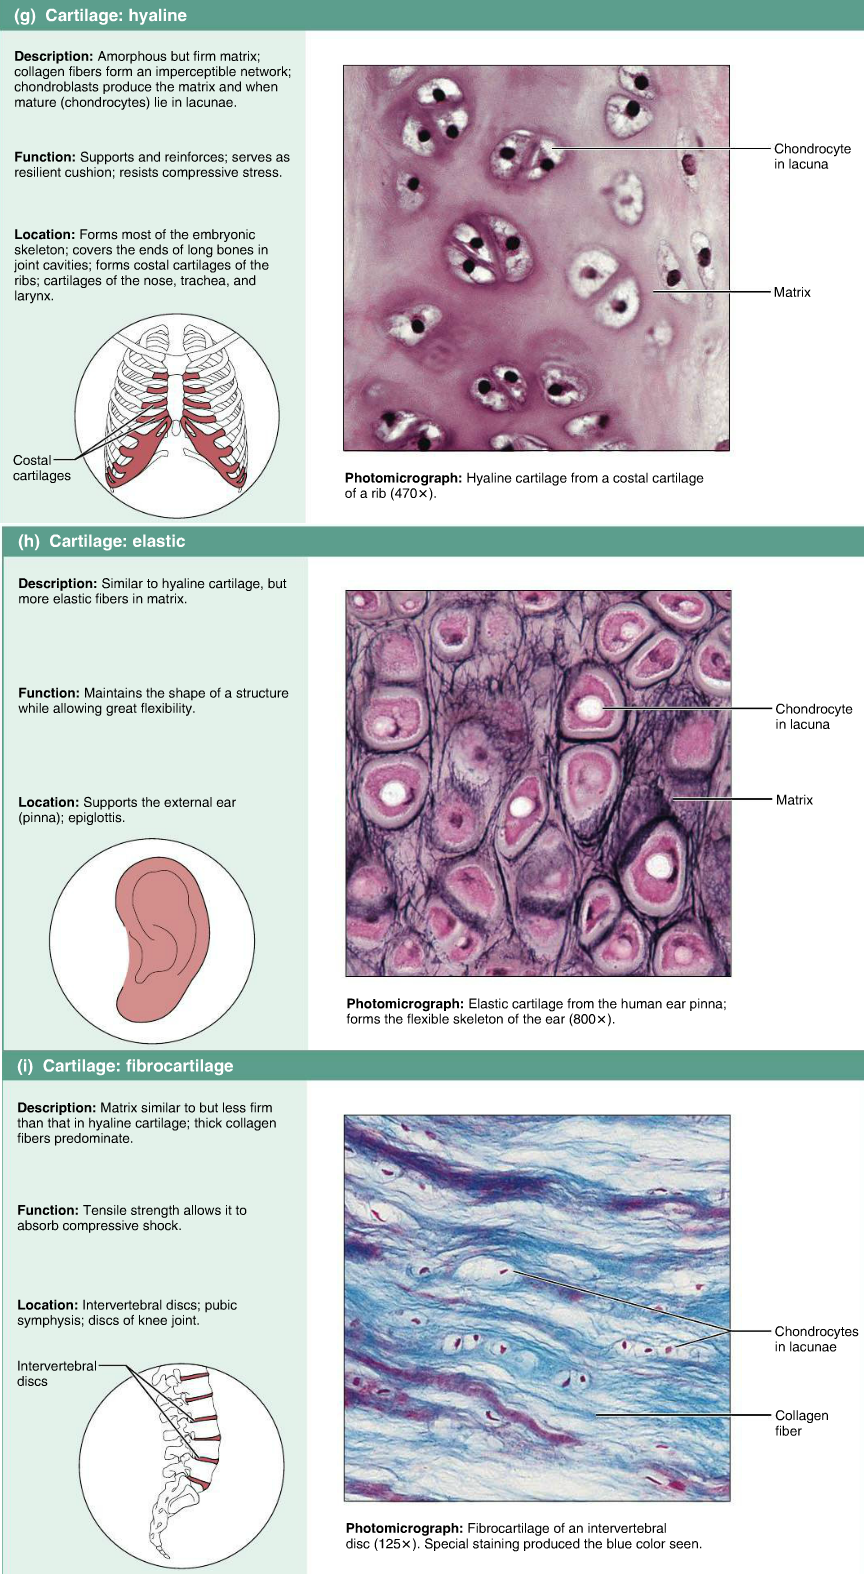 Connective Tissues Cartilage Hyaline Elastic Fibrocartilage Anatomy And Physiology Human Anatomy And Physiology Tissue Biology